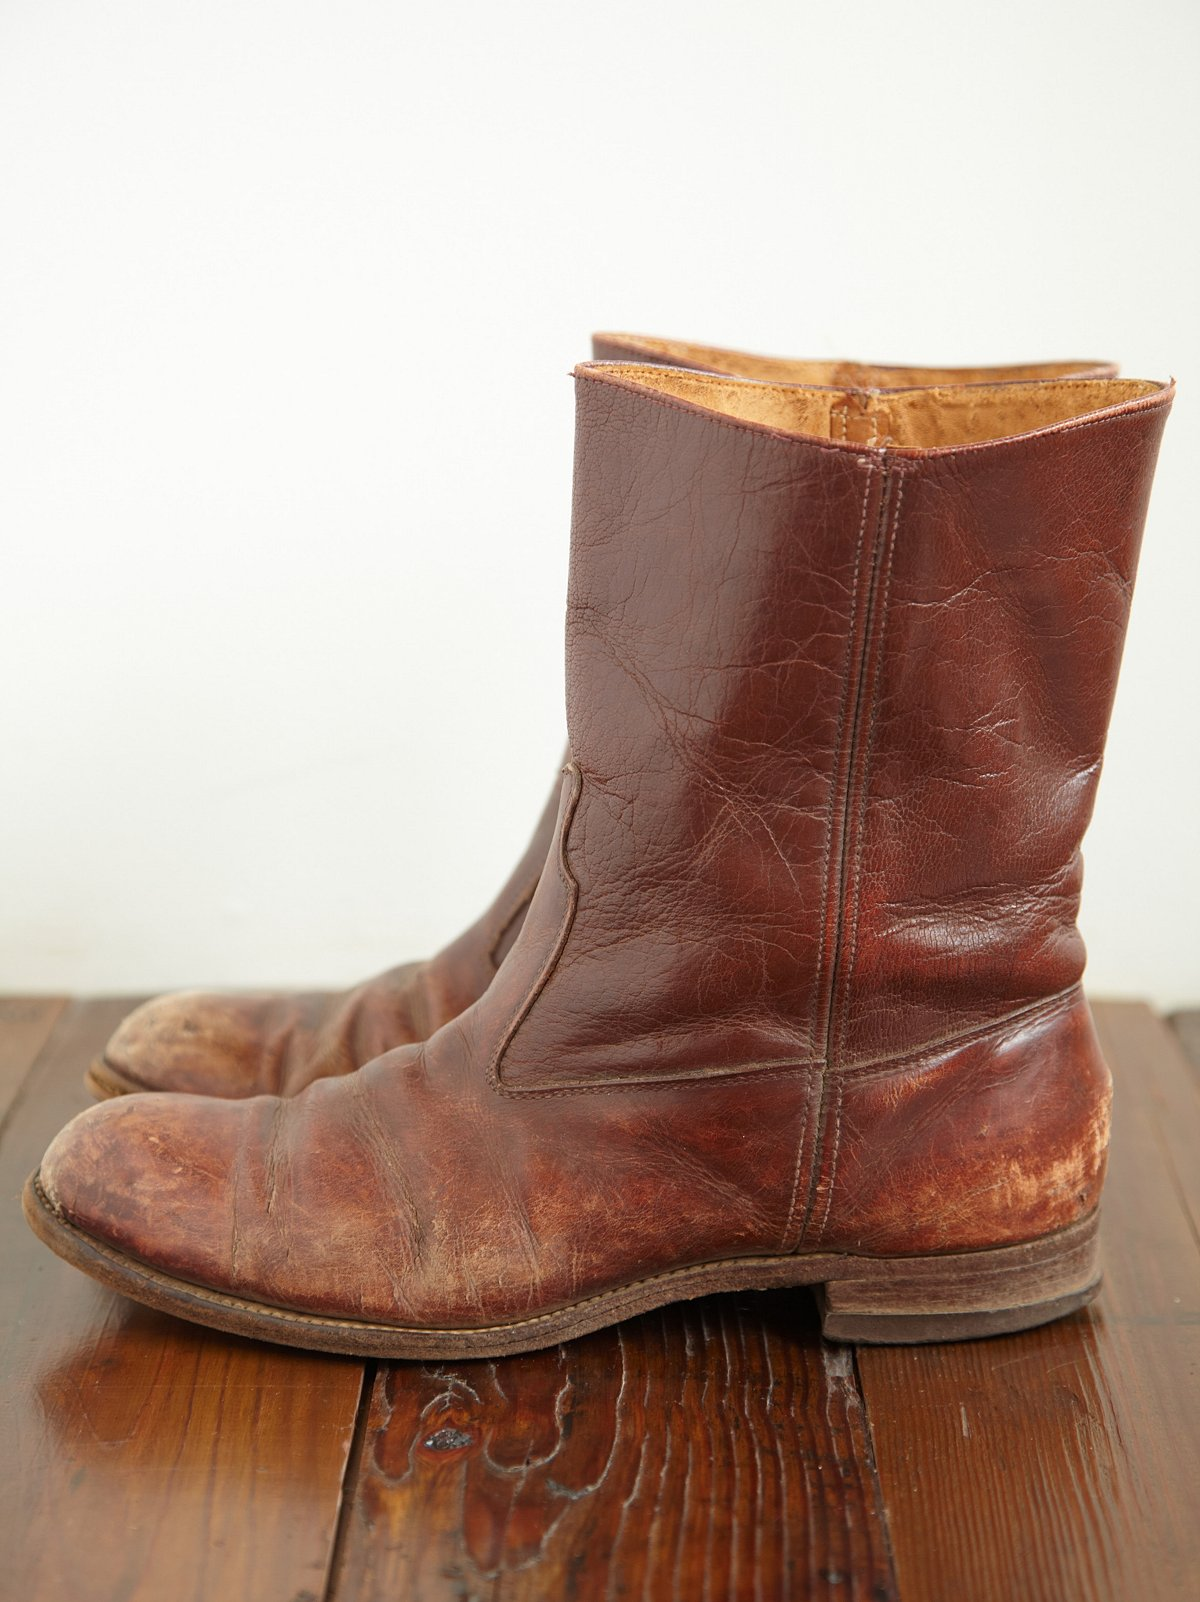 Vintage Round Toe Boots